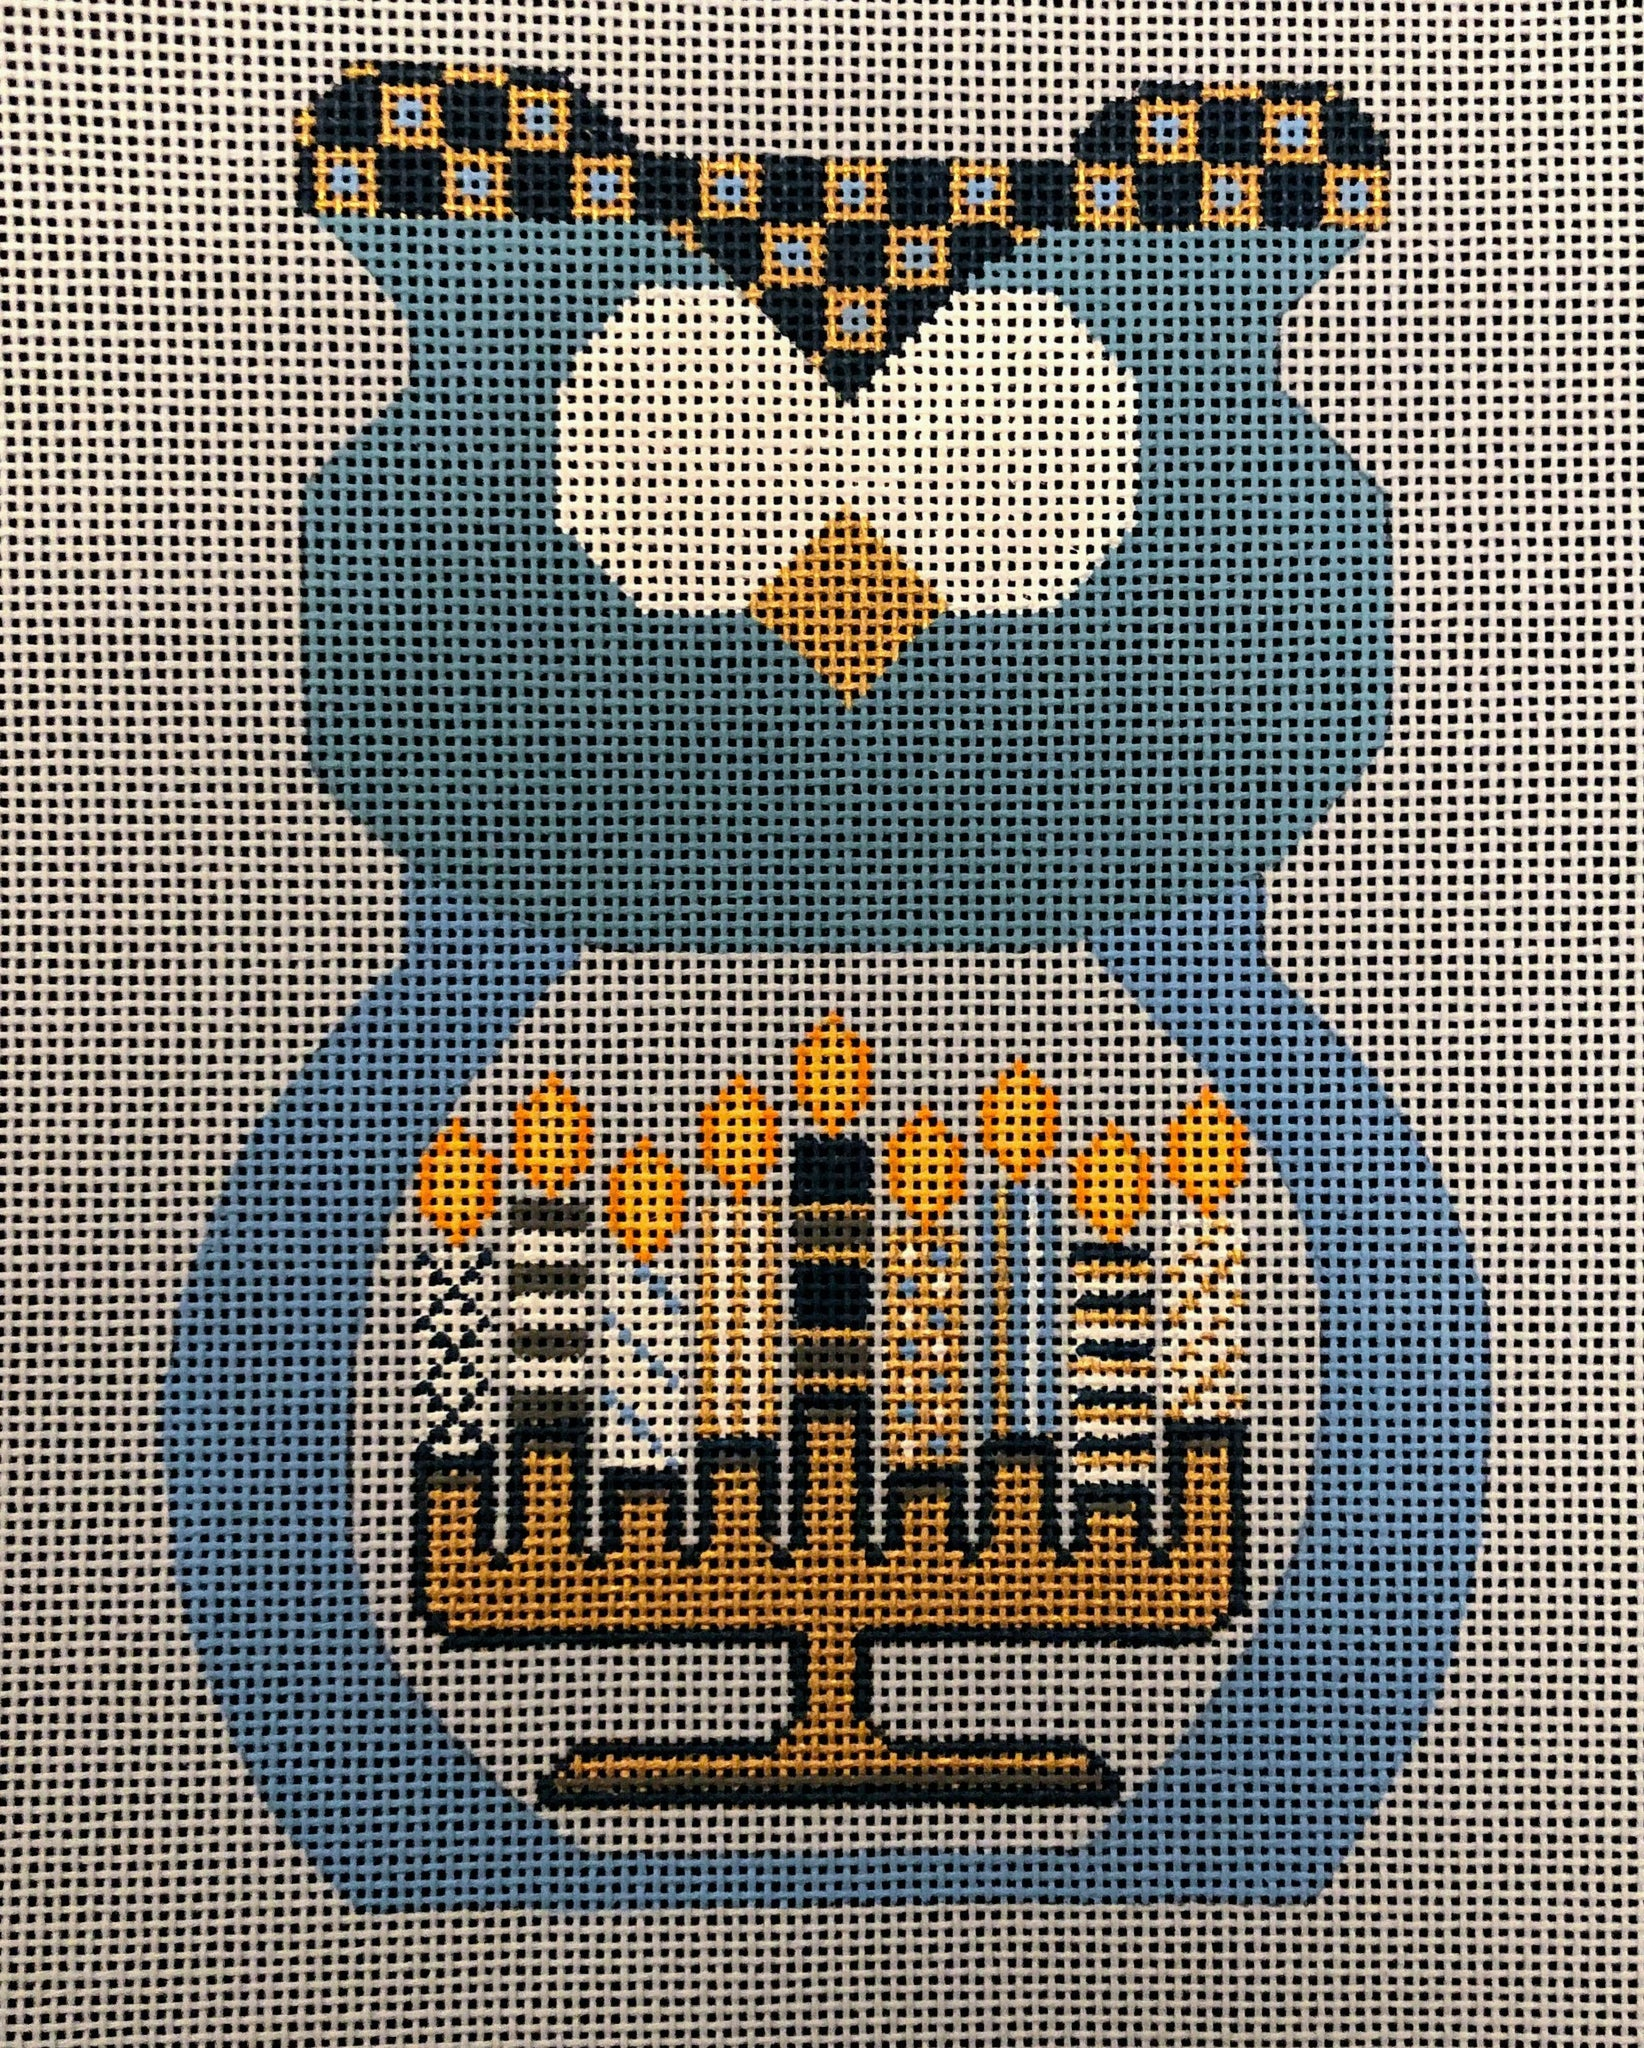 Hanukkah Owl - Stitch guide included